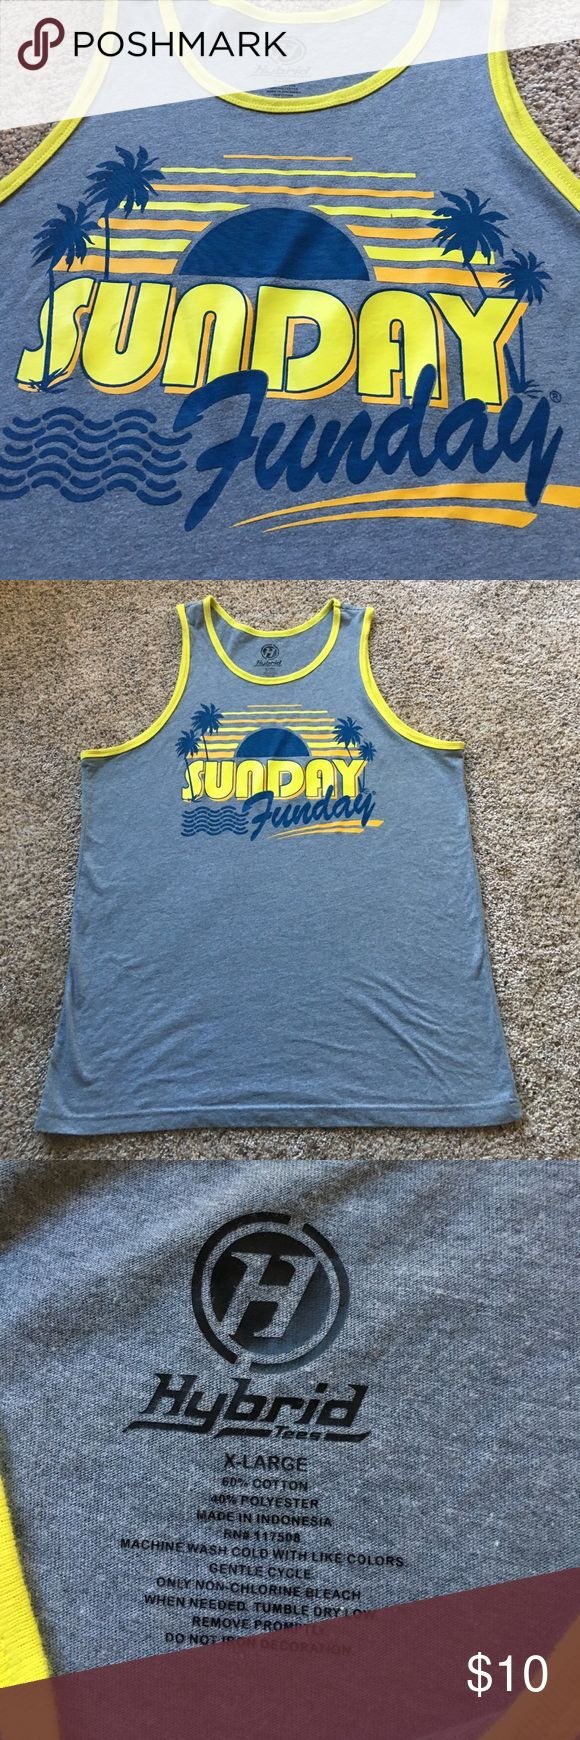 Sunday Funday Men's Muscle Tank The gray of this tank is more of a gray-blue color. Size XL, would also fit a Large. Show off your guns, dudes! Ladies interested: will fit an XL & XXL but will be baggy. Cute with leggings & a bralette or bandeau! Hybrid Tees Shirts Tank Tops